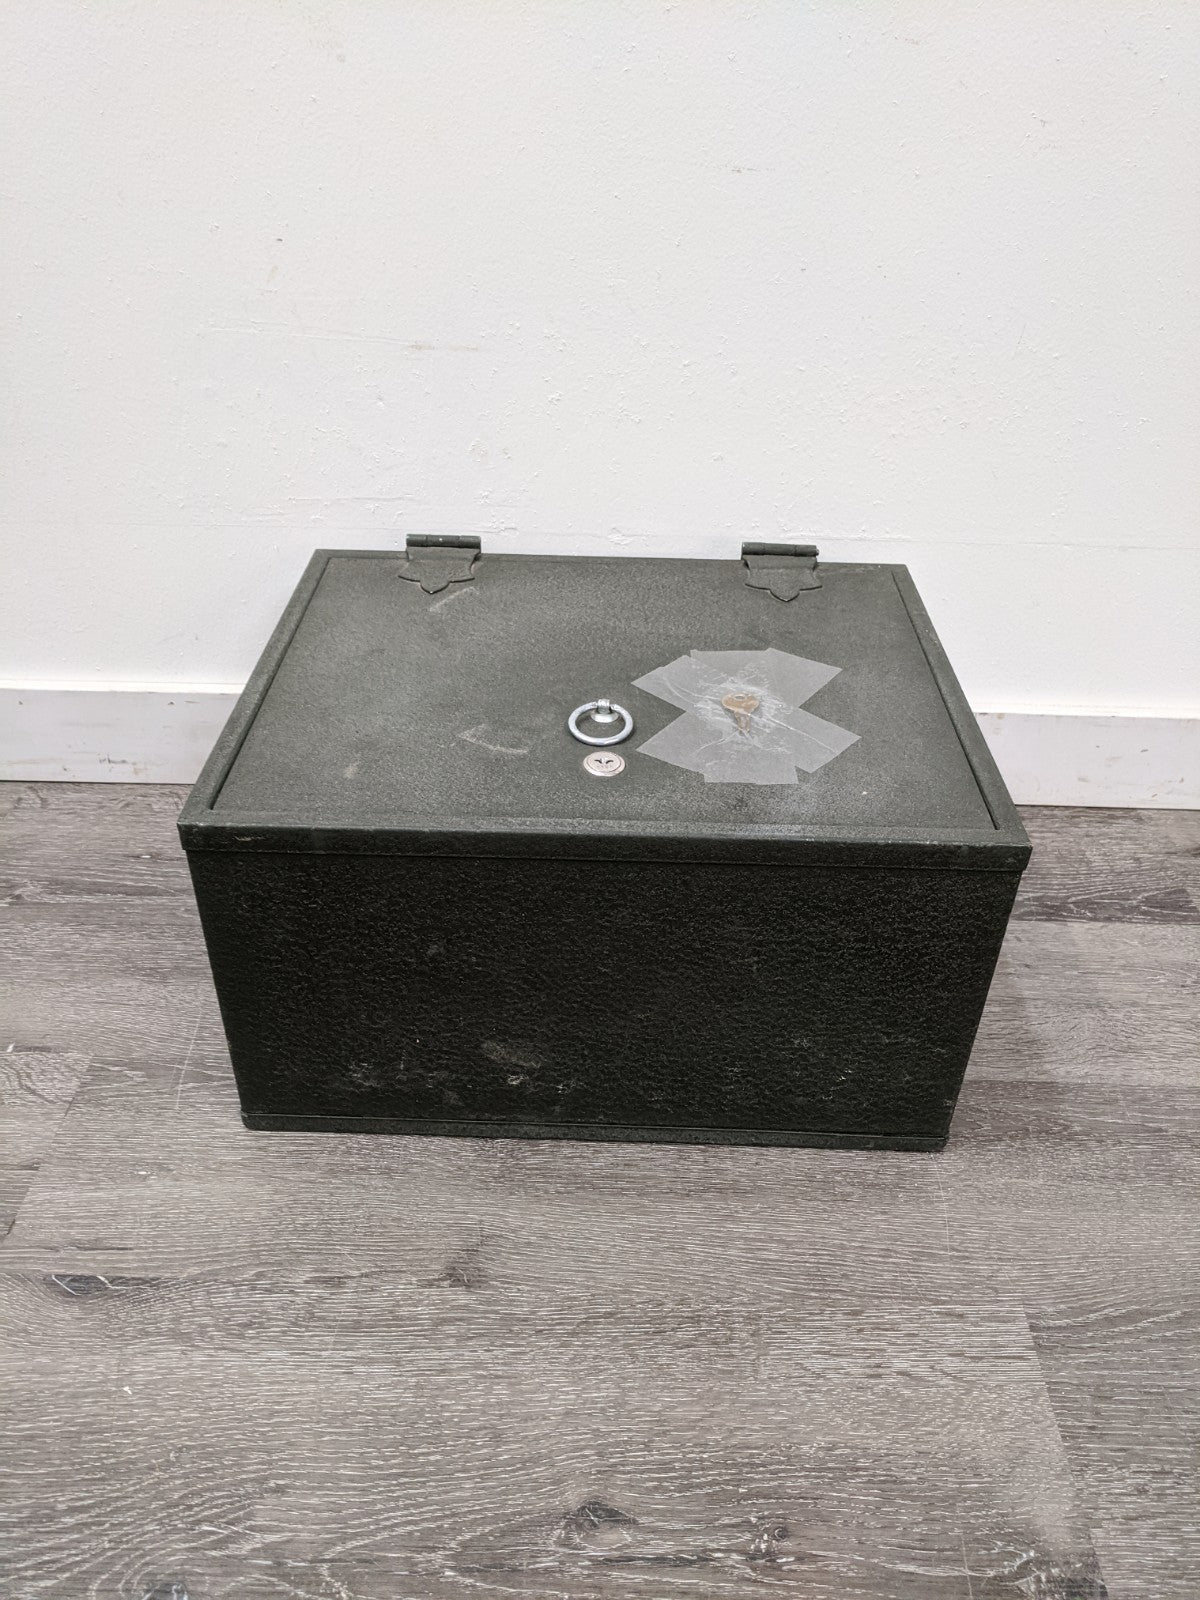 HEAVY Meilink Steel Safe Box